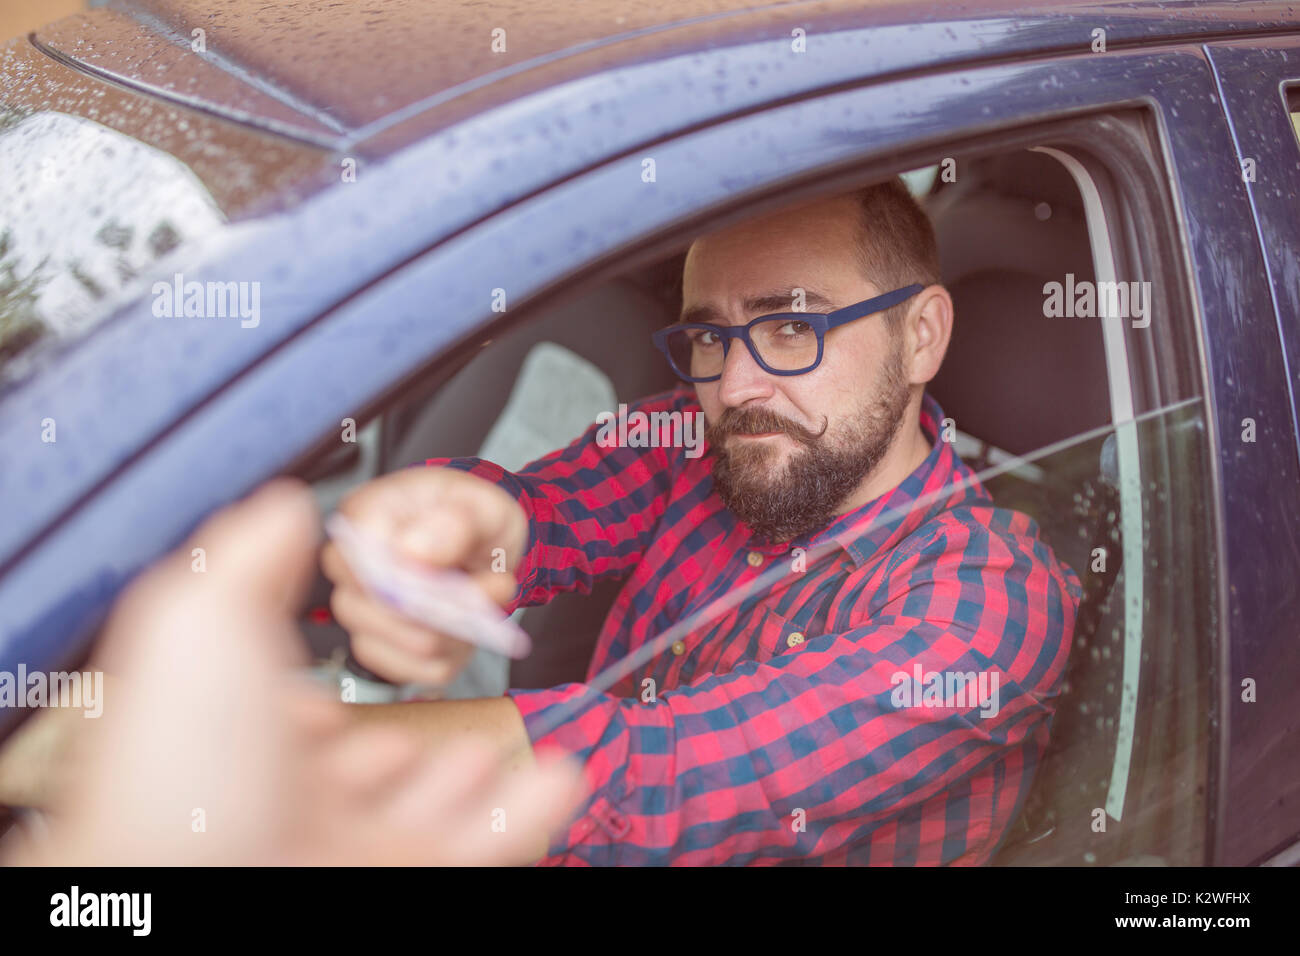 Man sitting in car and giving his driving licence through the window - Stock Image